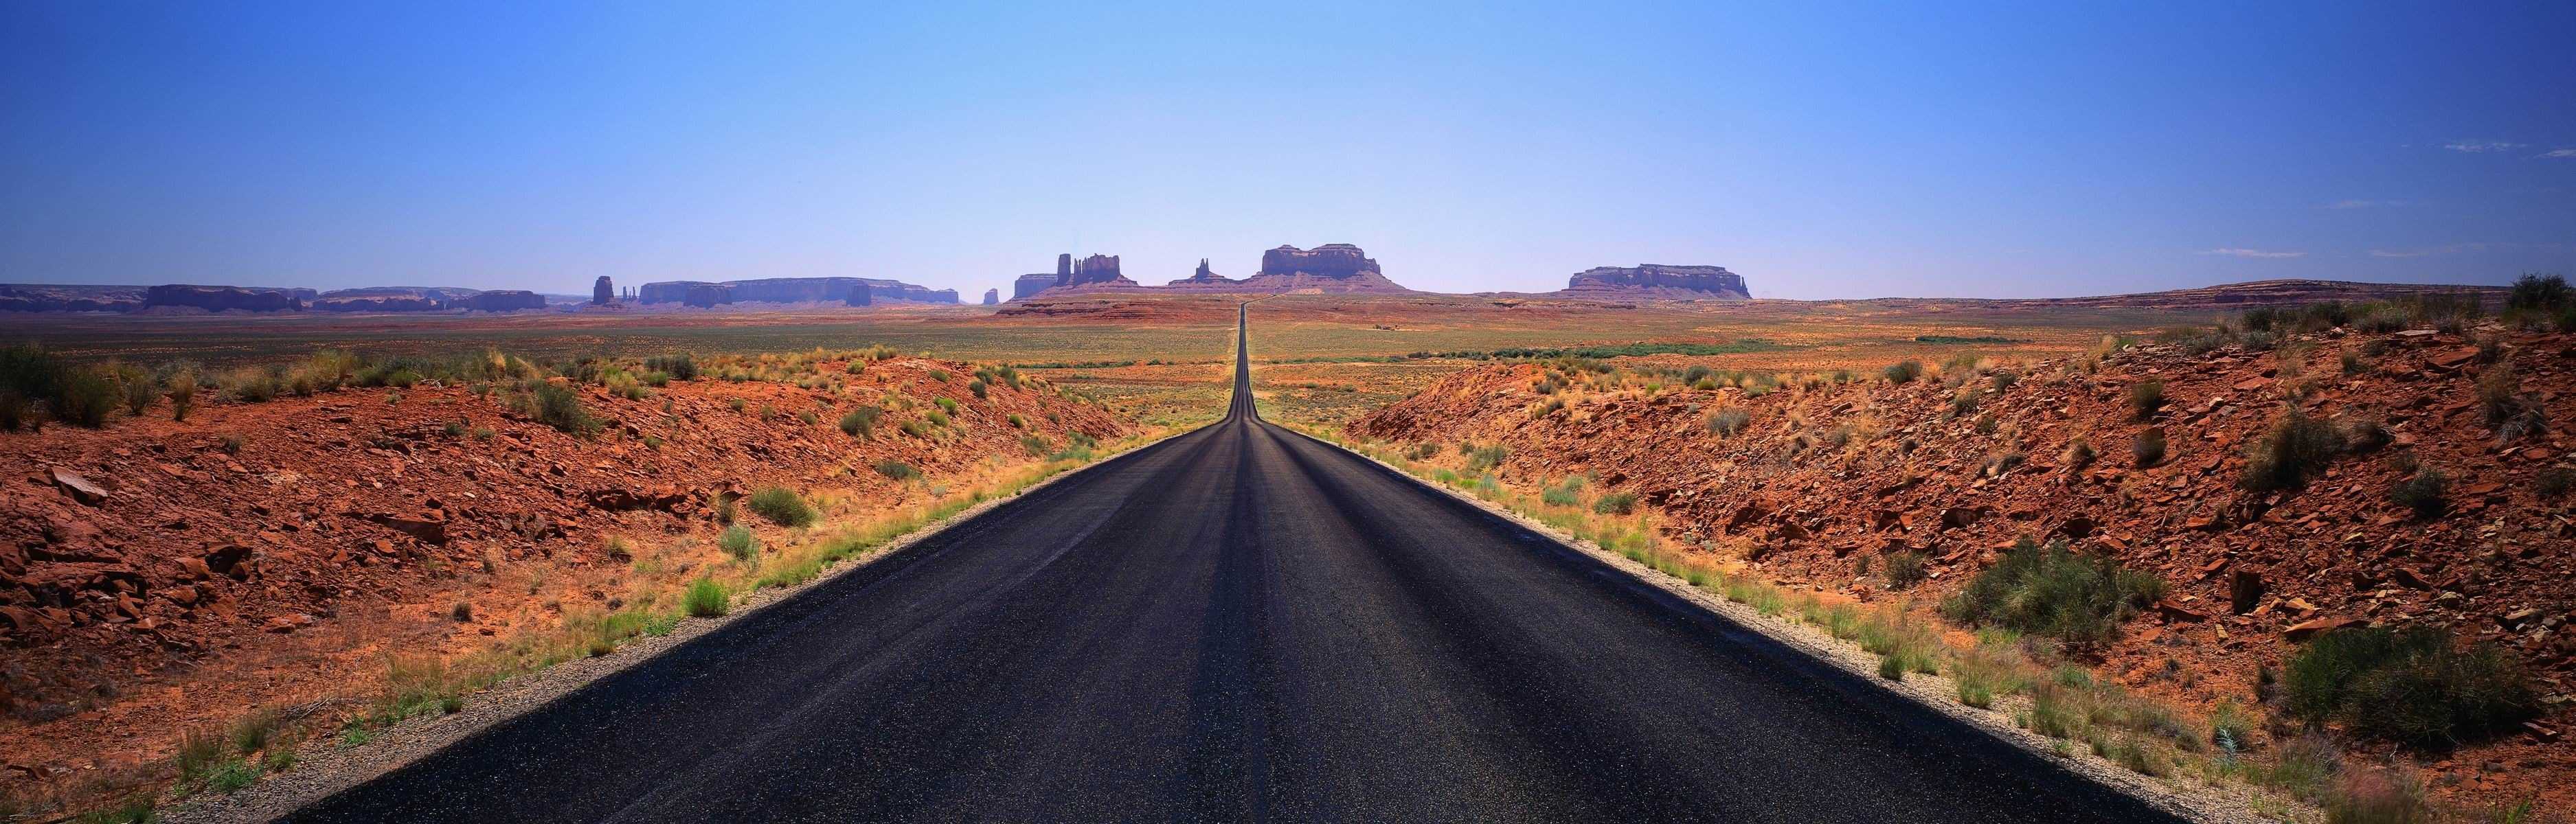 landscape Monument Valley road desert 2K wallpaper